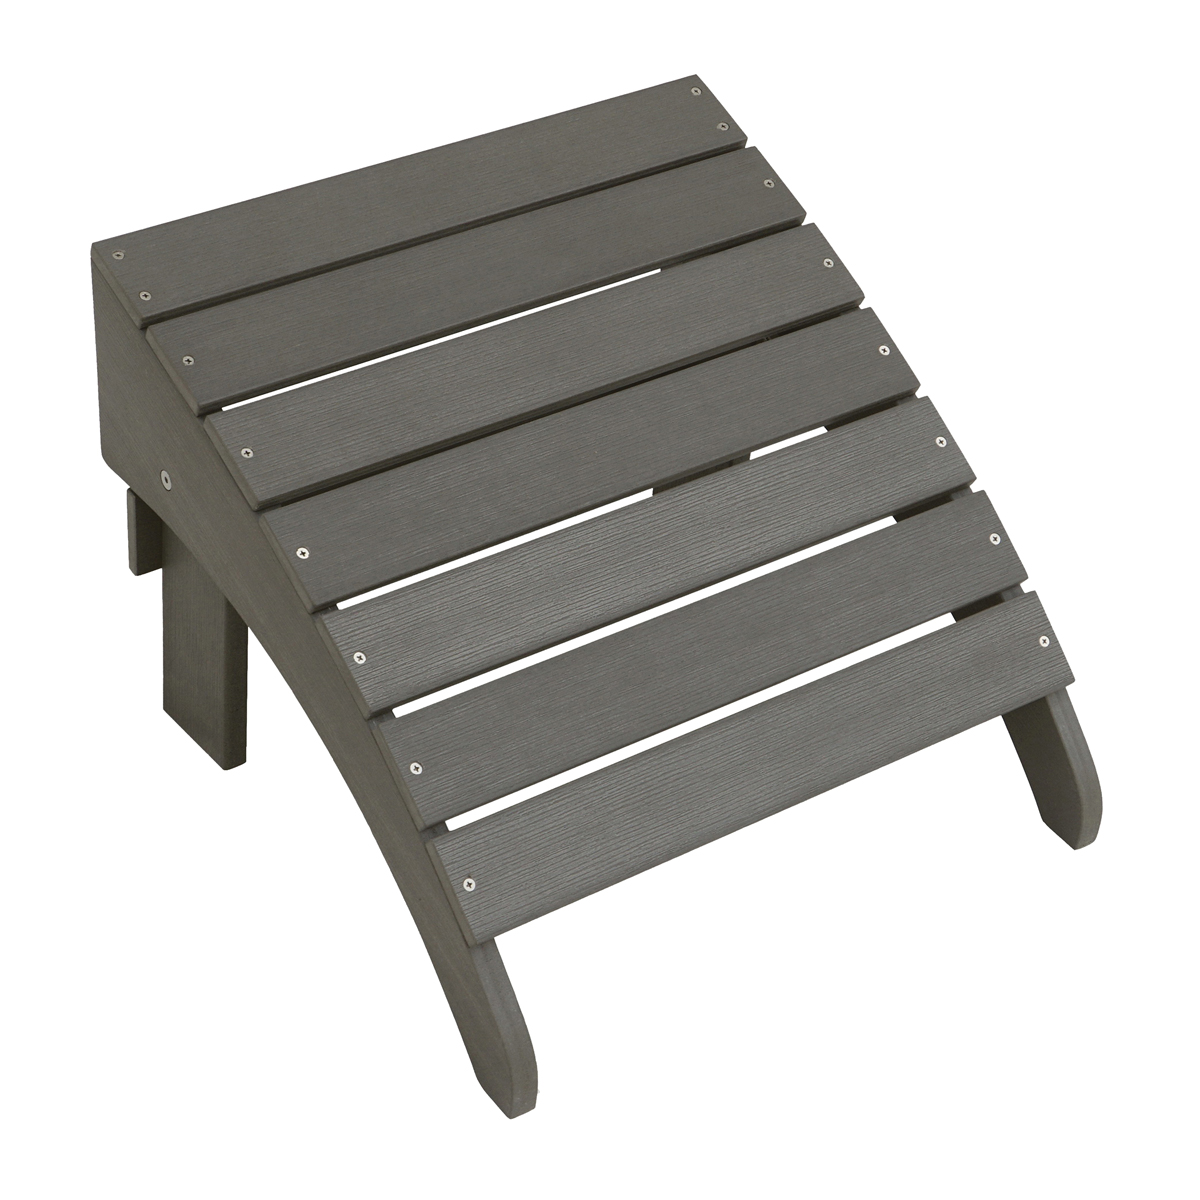 Picture of Seasonal Trends O8732QPW003 Adirondack Ottoman, 13.4 in OAL, 18.1 in OAW, 18.5 in OAH, Adirondack Seat, Grey